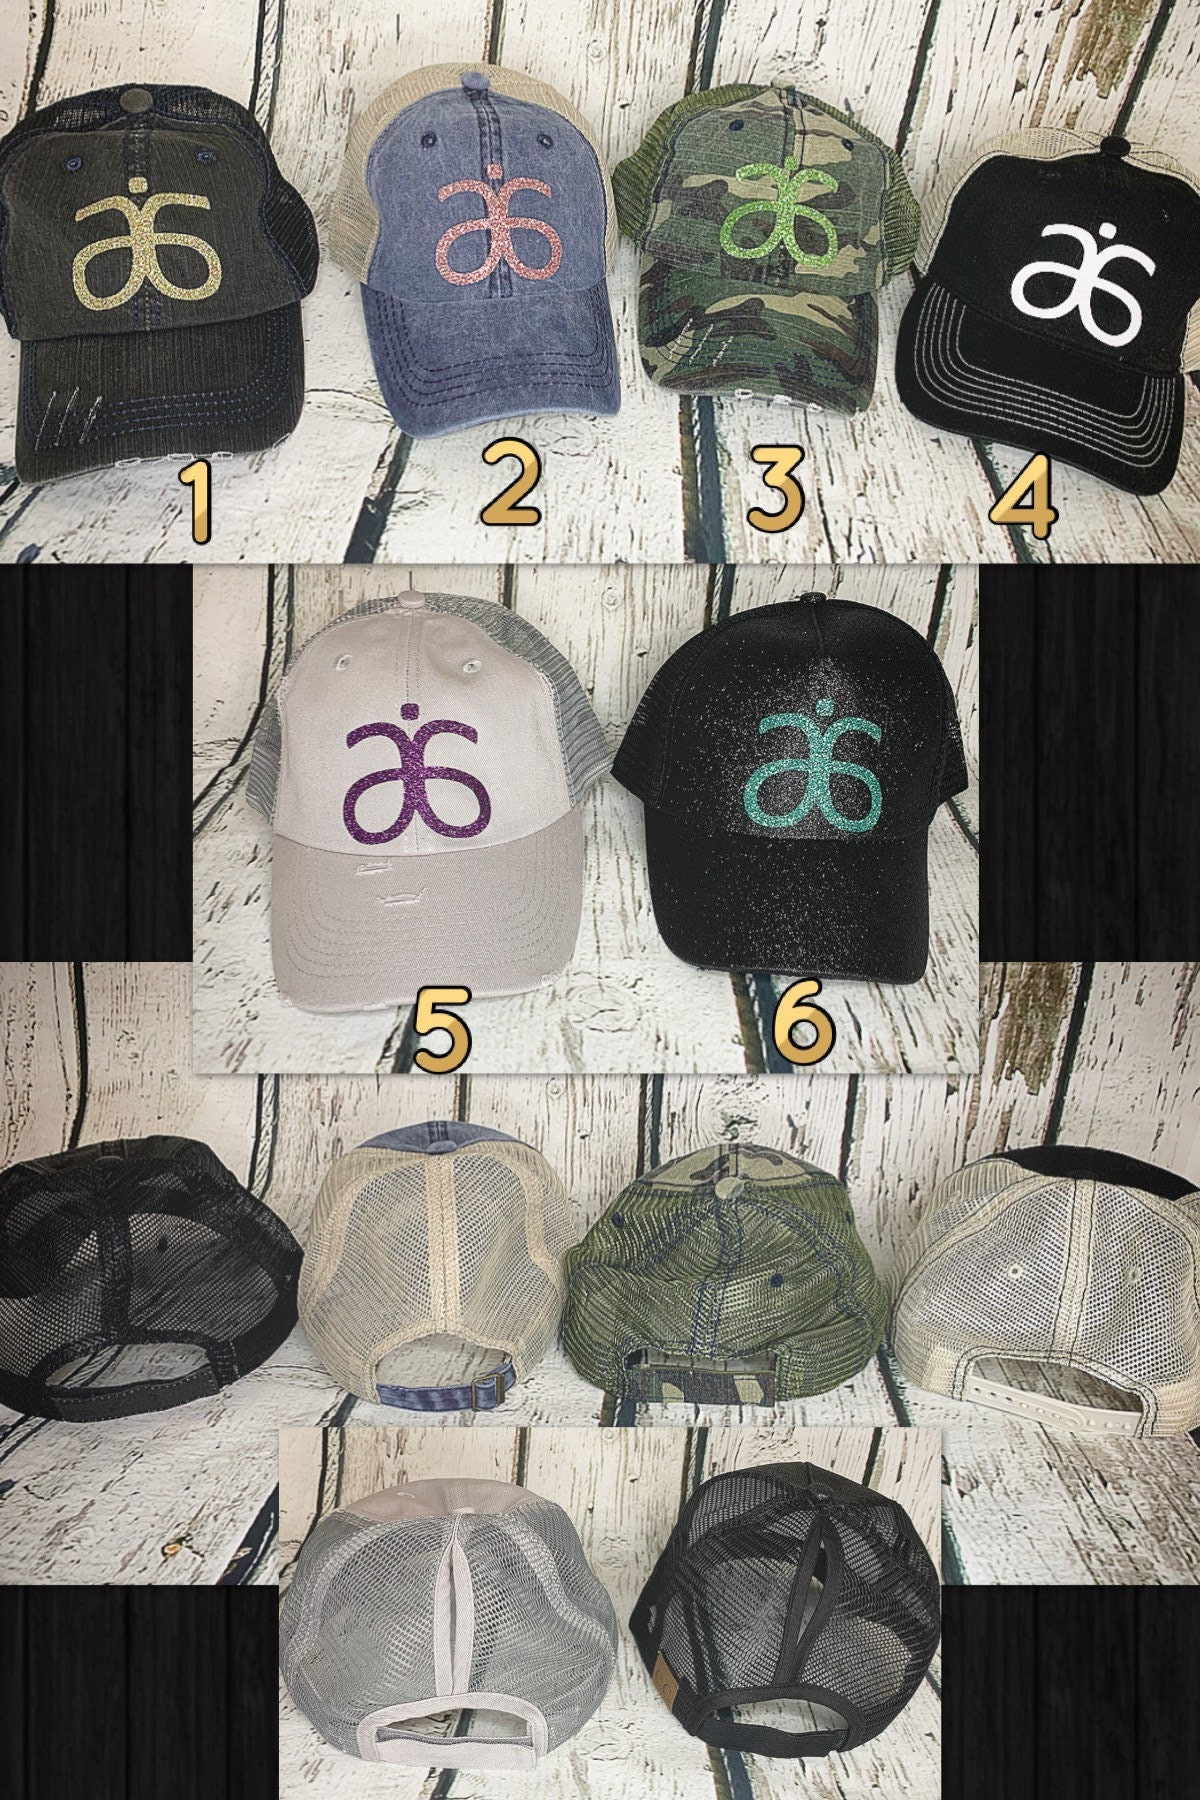 Arbonne REP YOUR BIZ Hat Trucker Mesh Camo baseball distressed ponytail  Women Men Caps team business conferenece incentive trip 9d9b97055a2